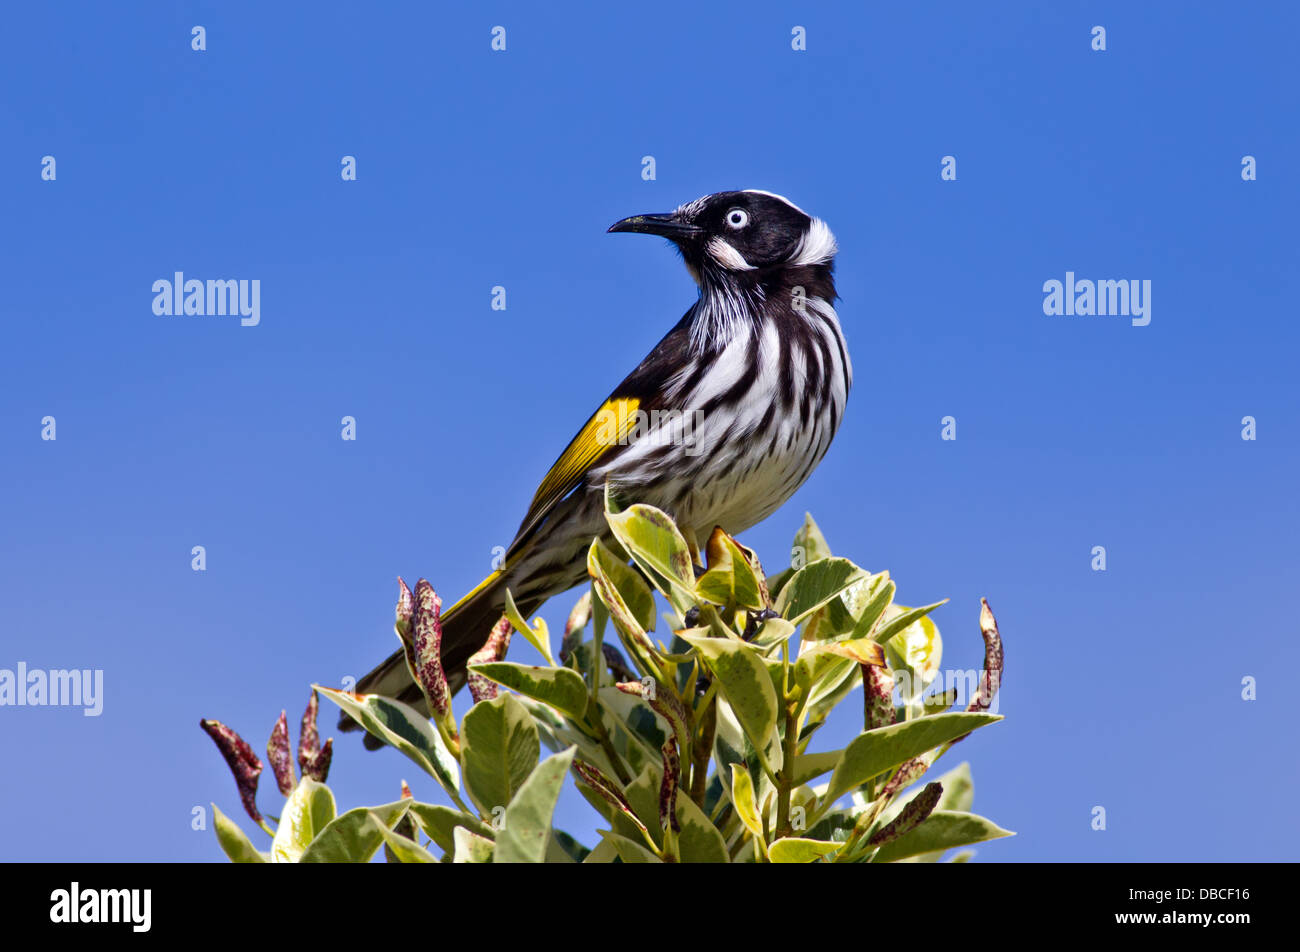 A New Holland Honeyeater perched on top of a bush with a lovely blue sky in the background Hallett Cove South Australia - Stock Image